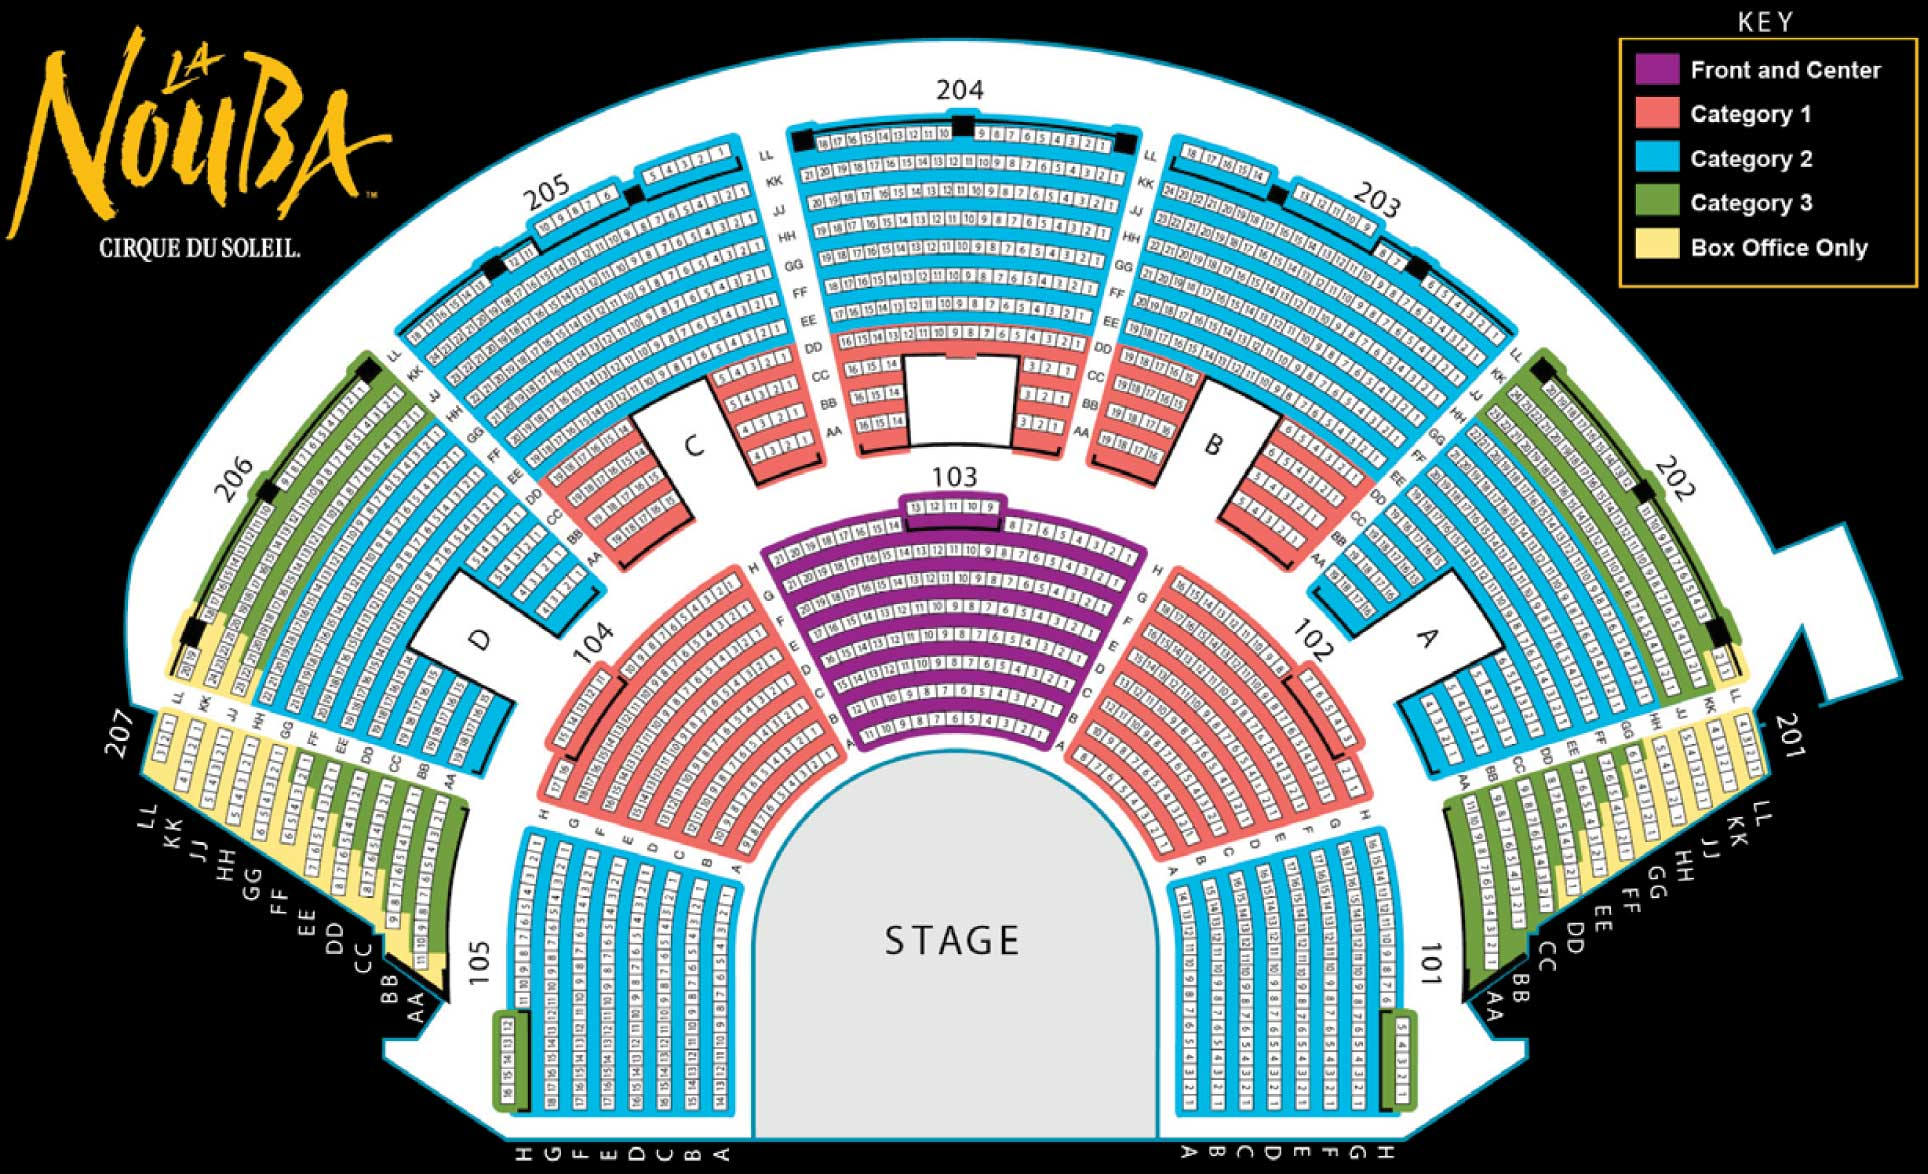 Cirque du Soleil Seating Chart at Dsiney Springs – Seating Chart